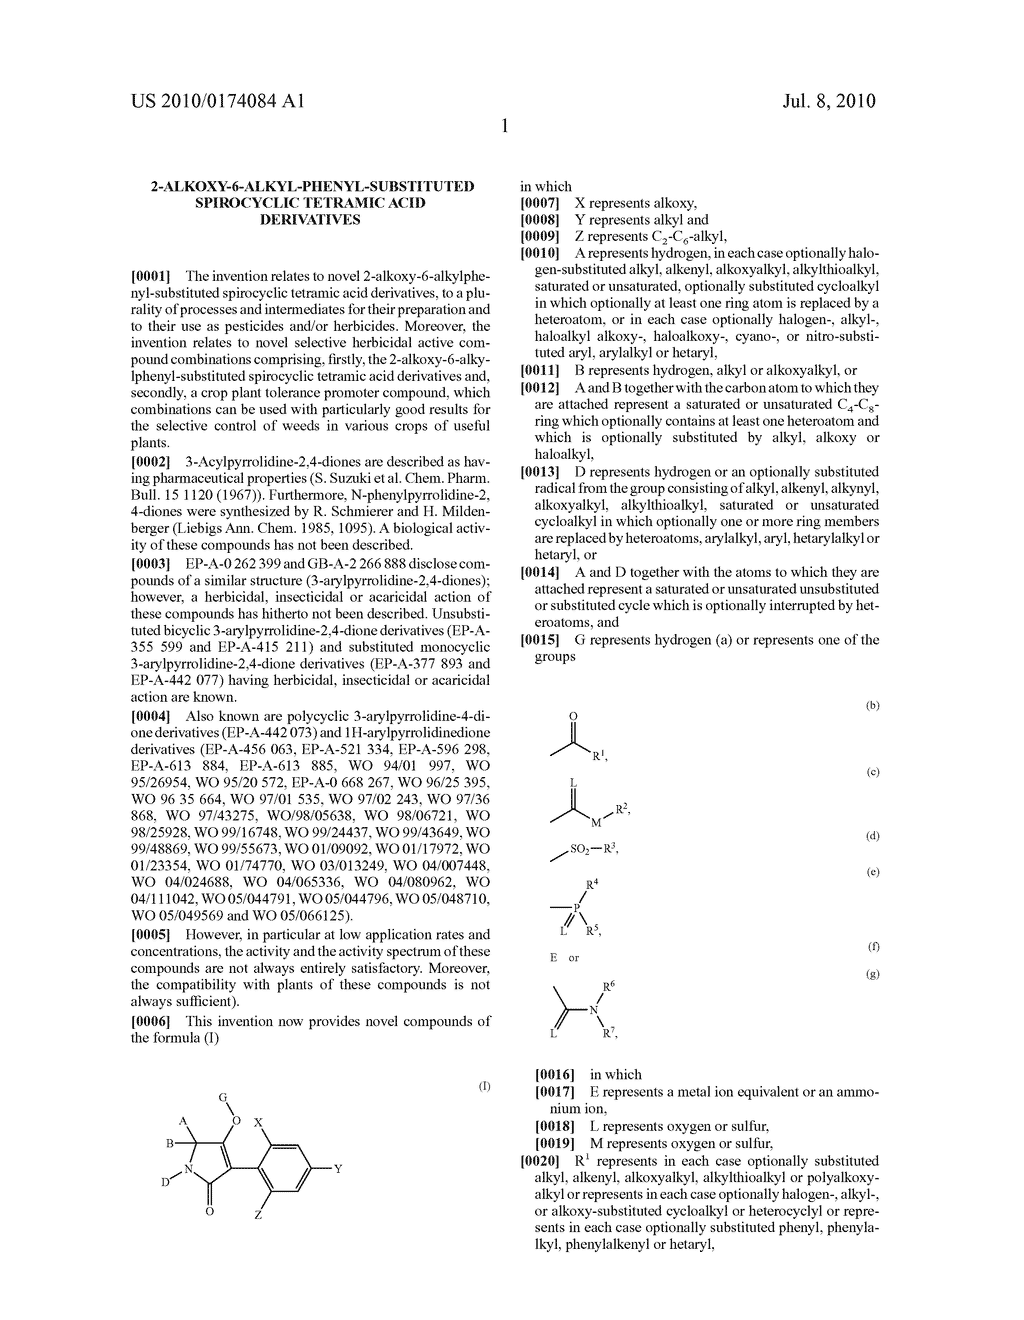 2-Alkoxy-6-alkyl-phenyl-substituted Spirocyclic Tetramic Acid Derivatives - diagram, schematic, and image 02